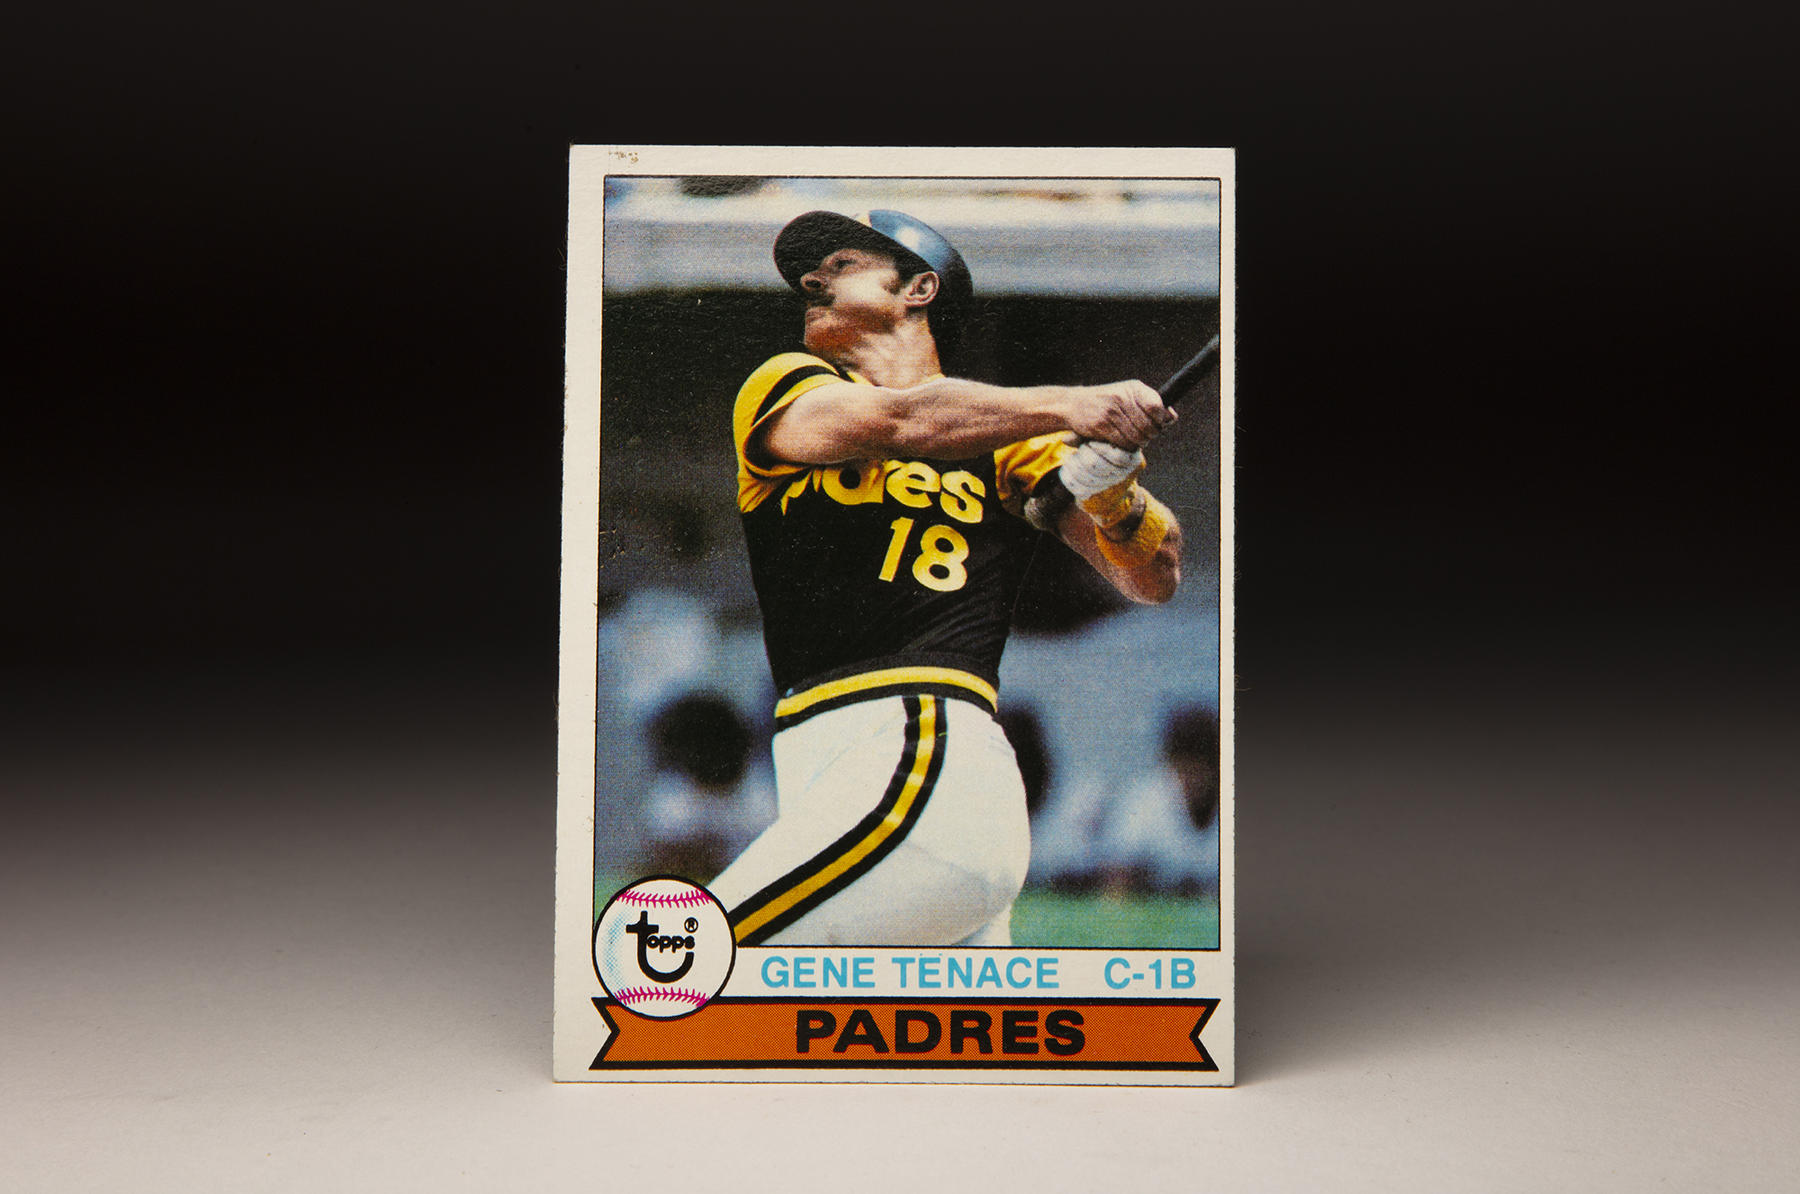 The front of Topps' 1979 Gene Tenace card. (Milo Stewart Jr./National Baseball Hall of Fame and Museum)